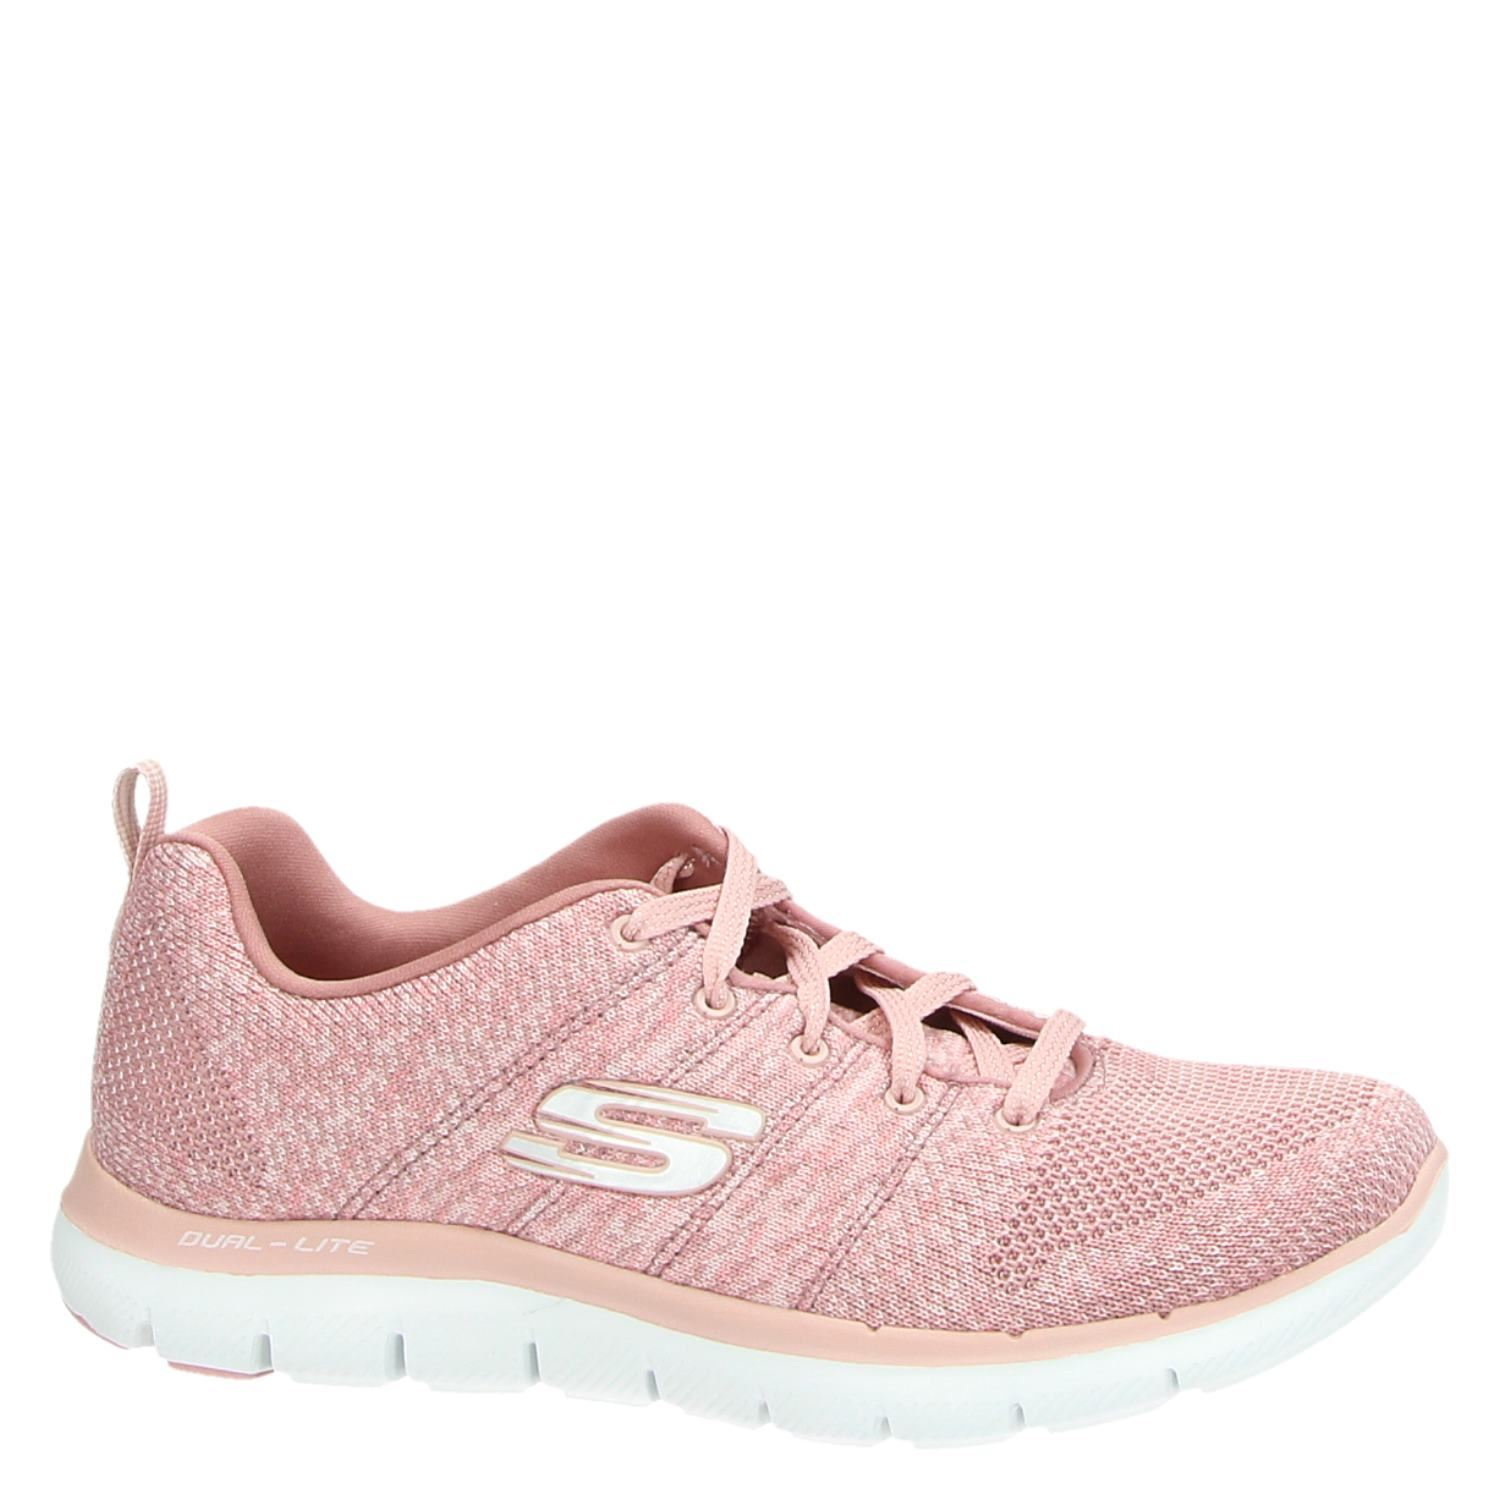 Skechers Dames Skechers Dames Lage Sneakers Roze